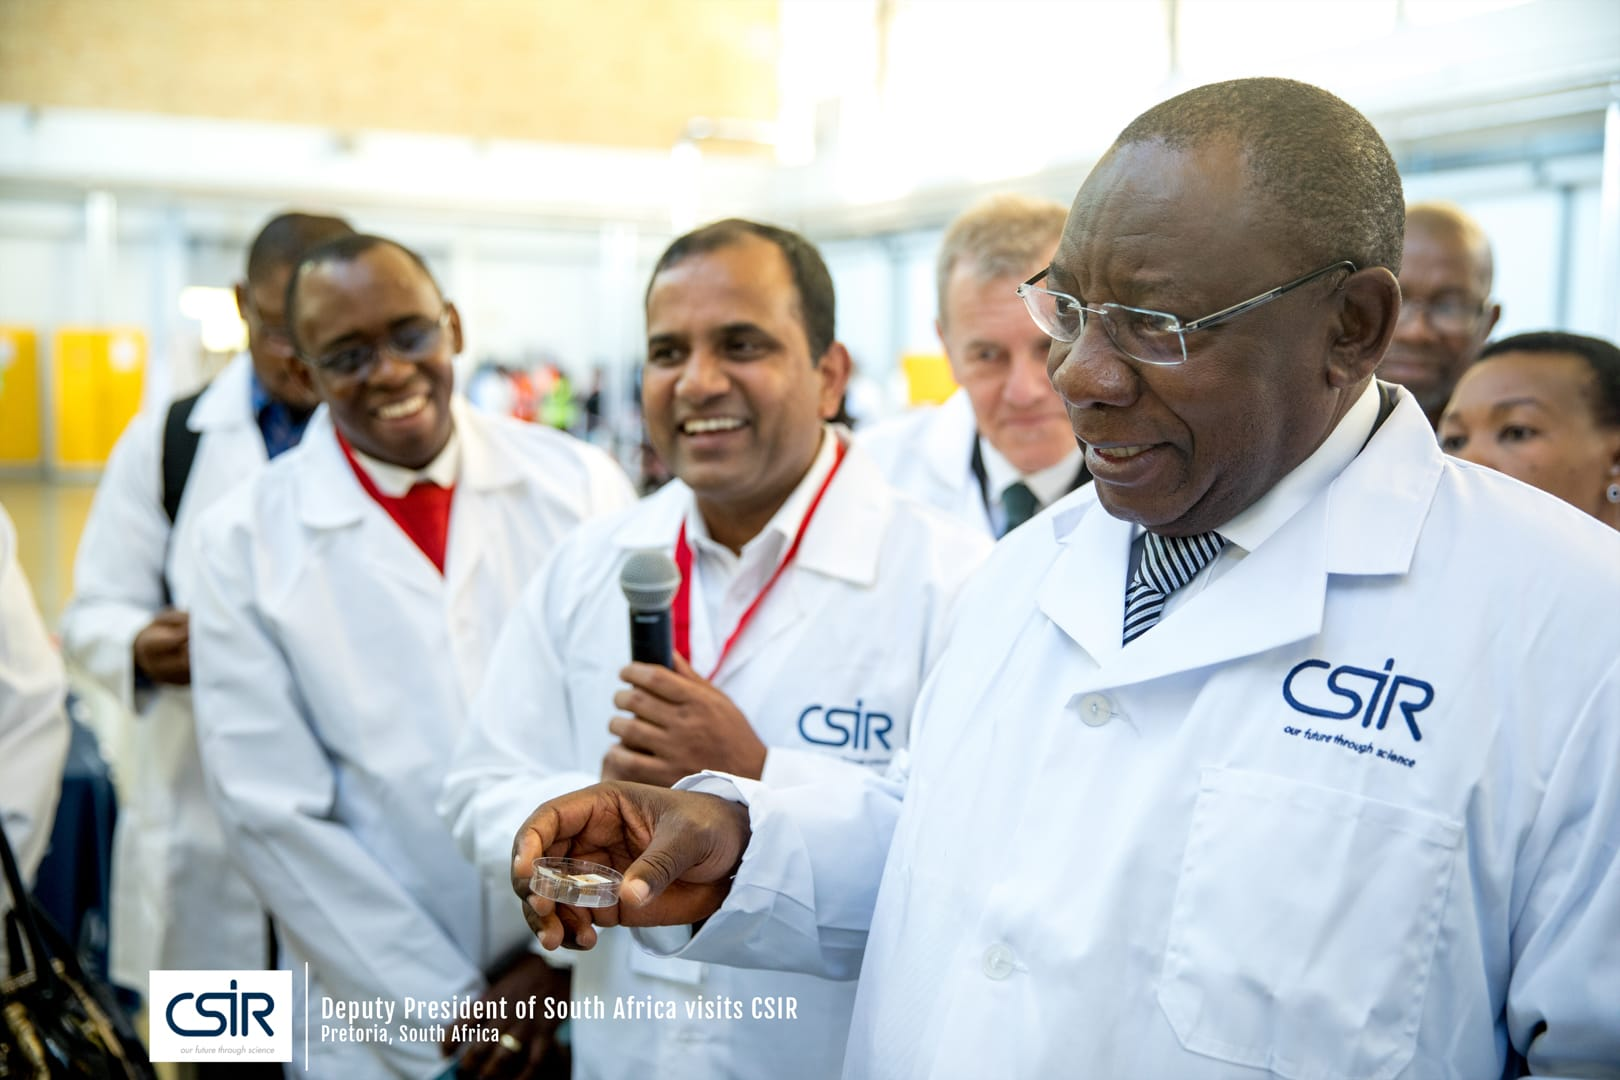 Deputy President of South Africa Visits CSIR